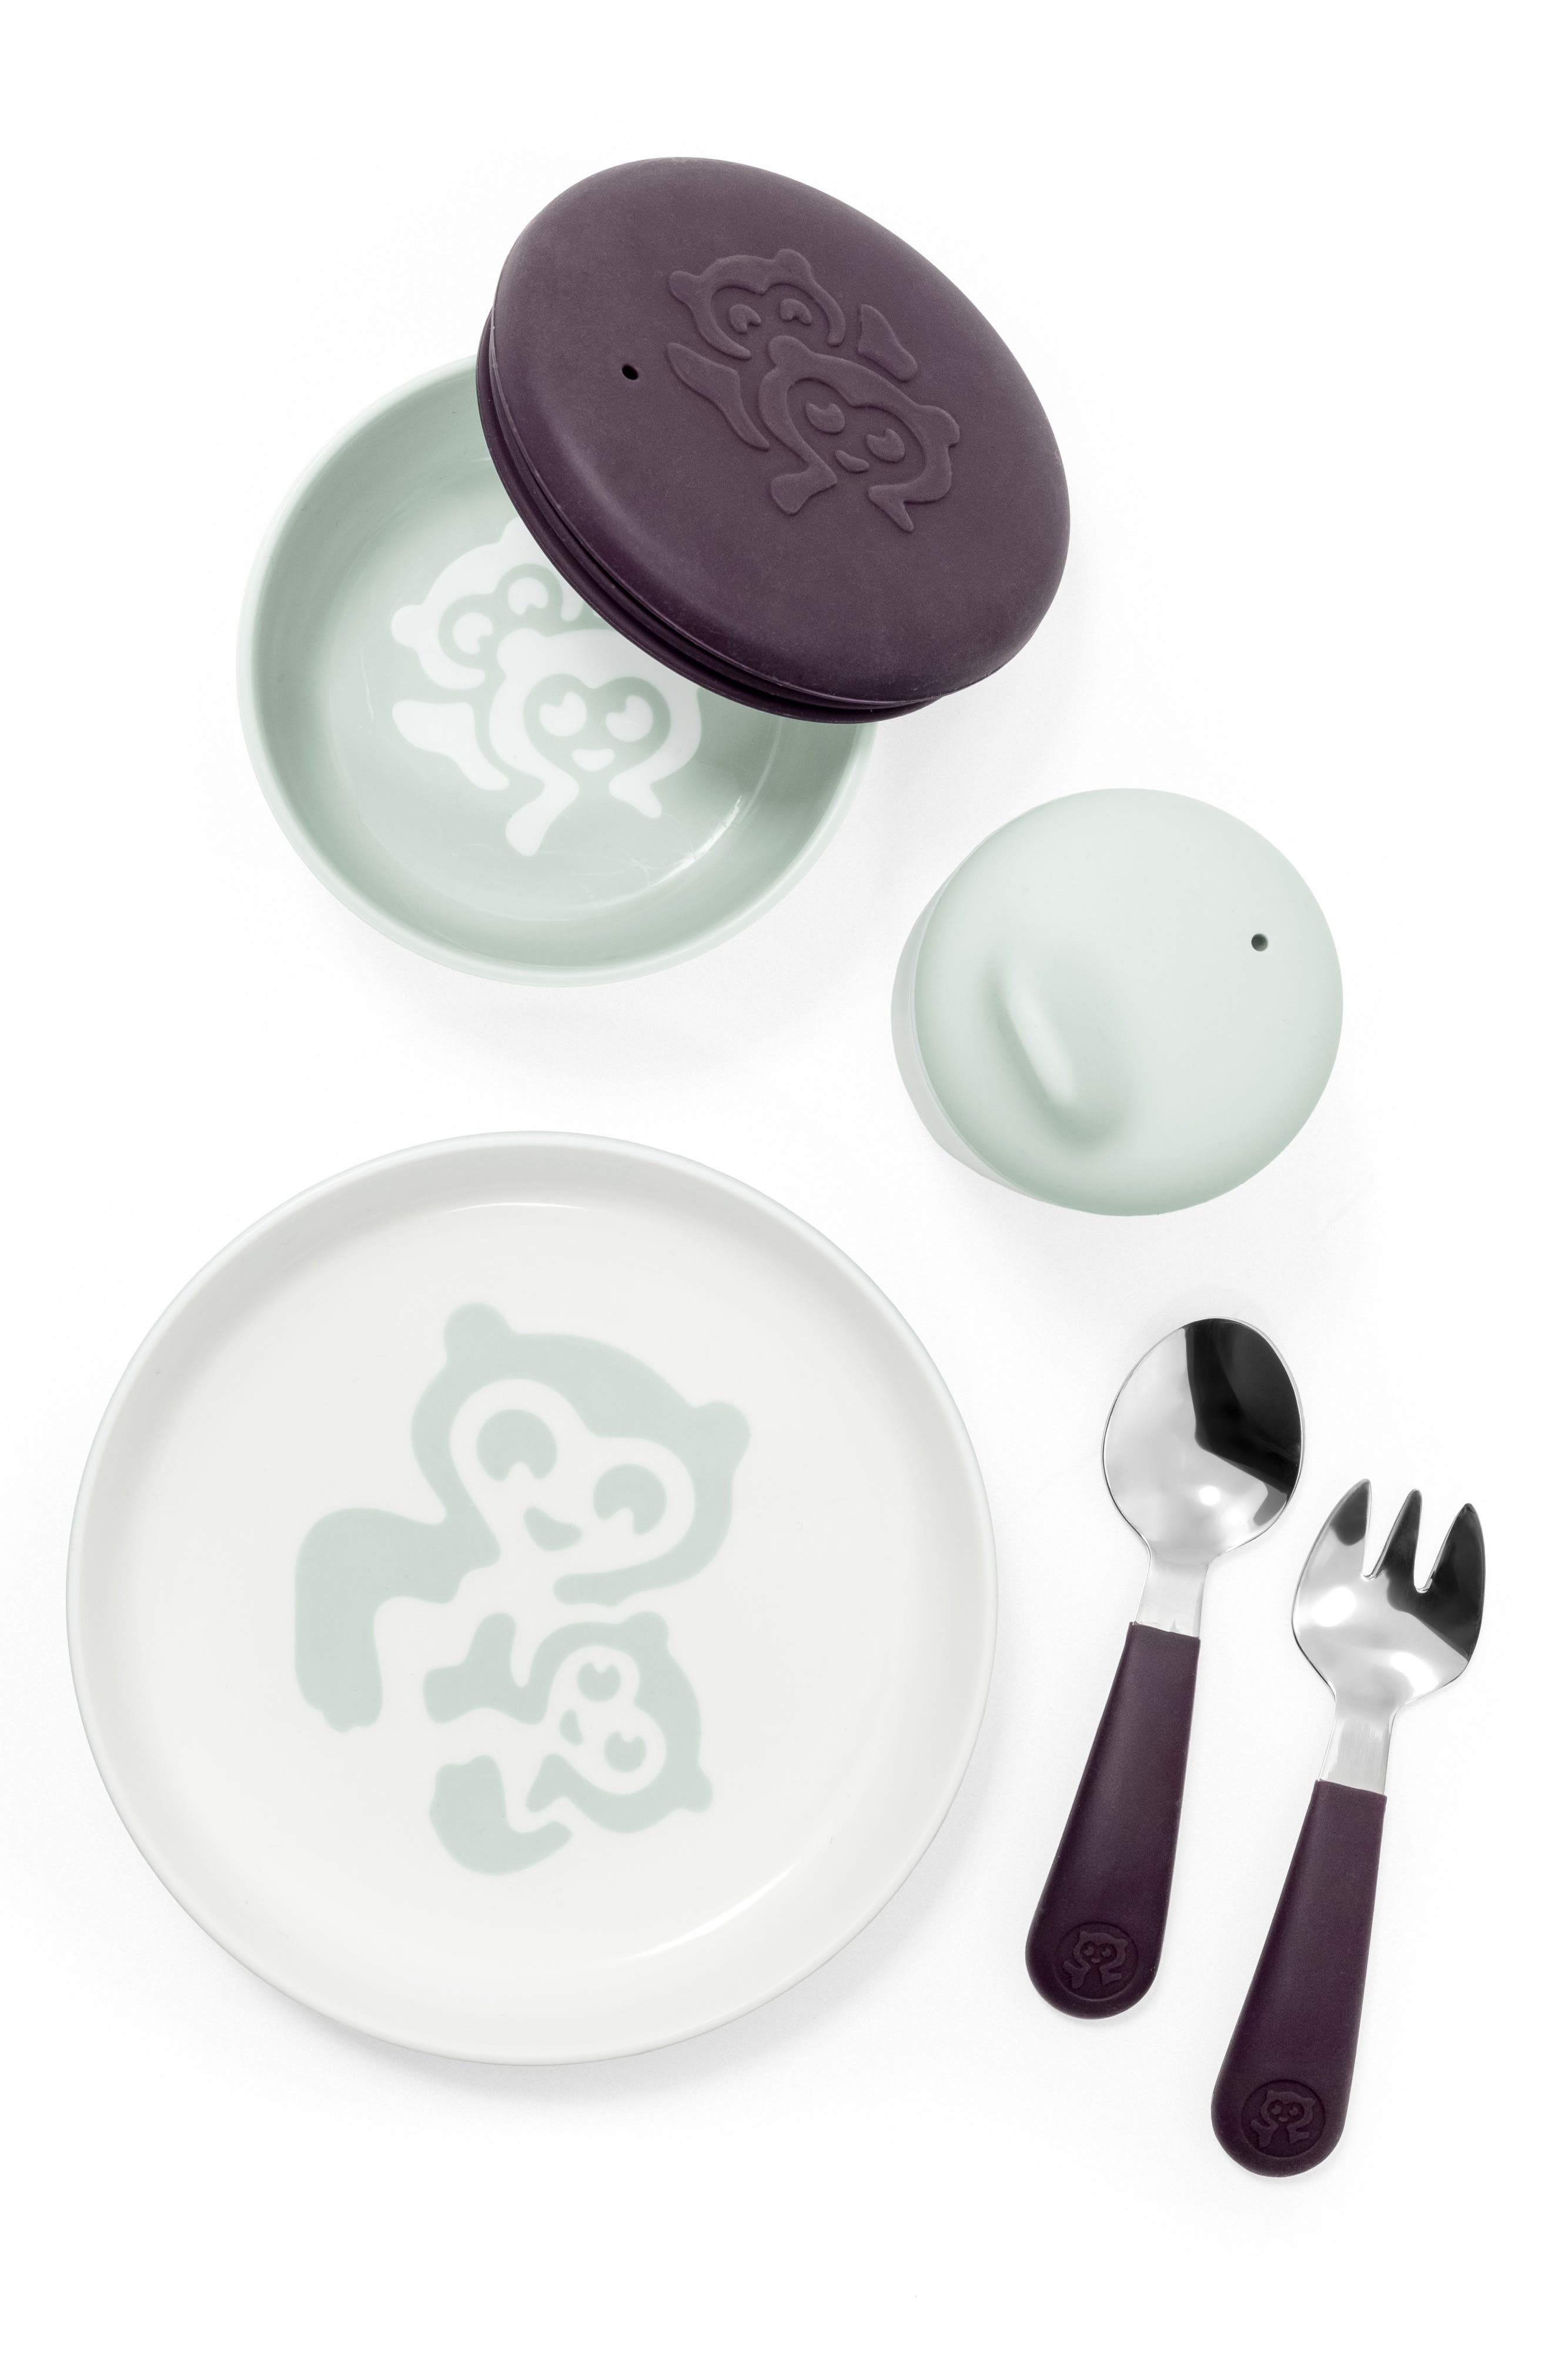 STOKKE, Munch Complete Lidded Bowl, Sippy Cup, Plate, Fork & Spoon Set, Main thumbnail 1, color, SOFT MINT